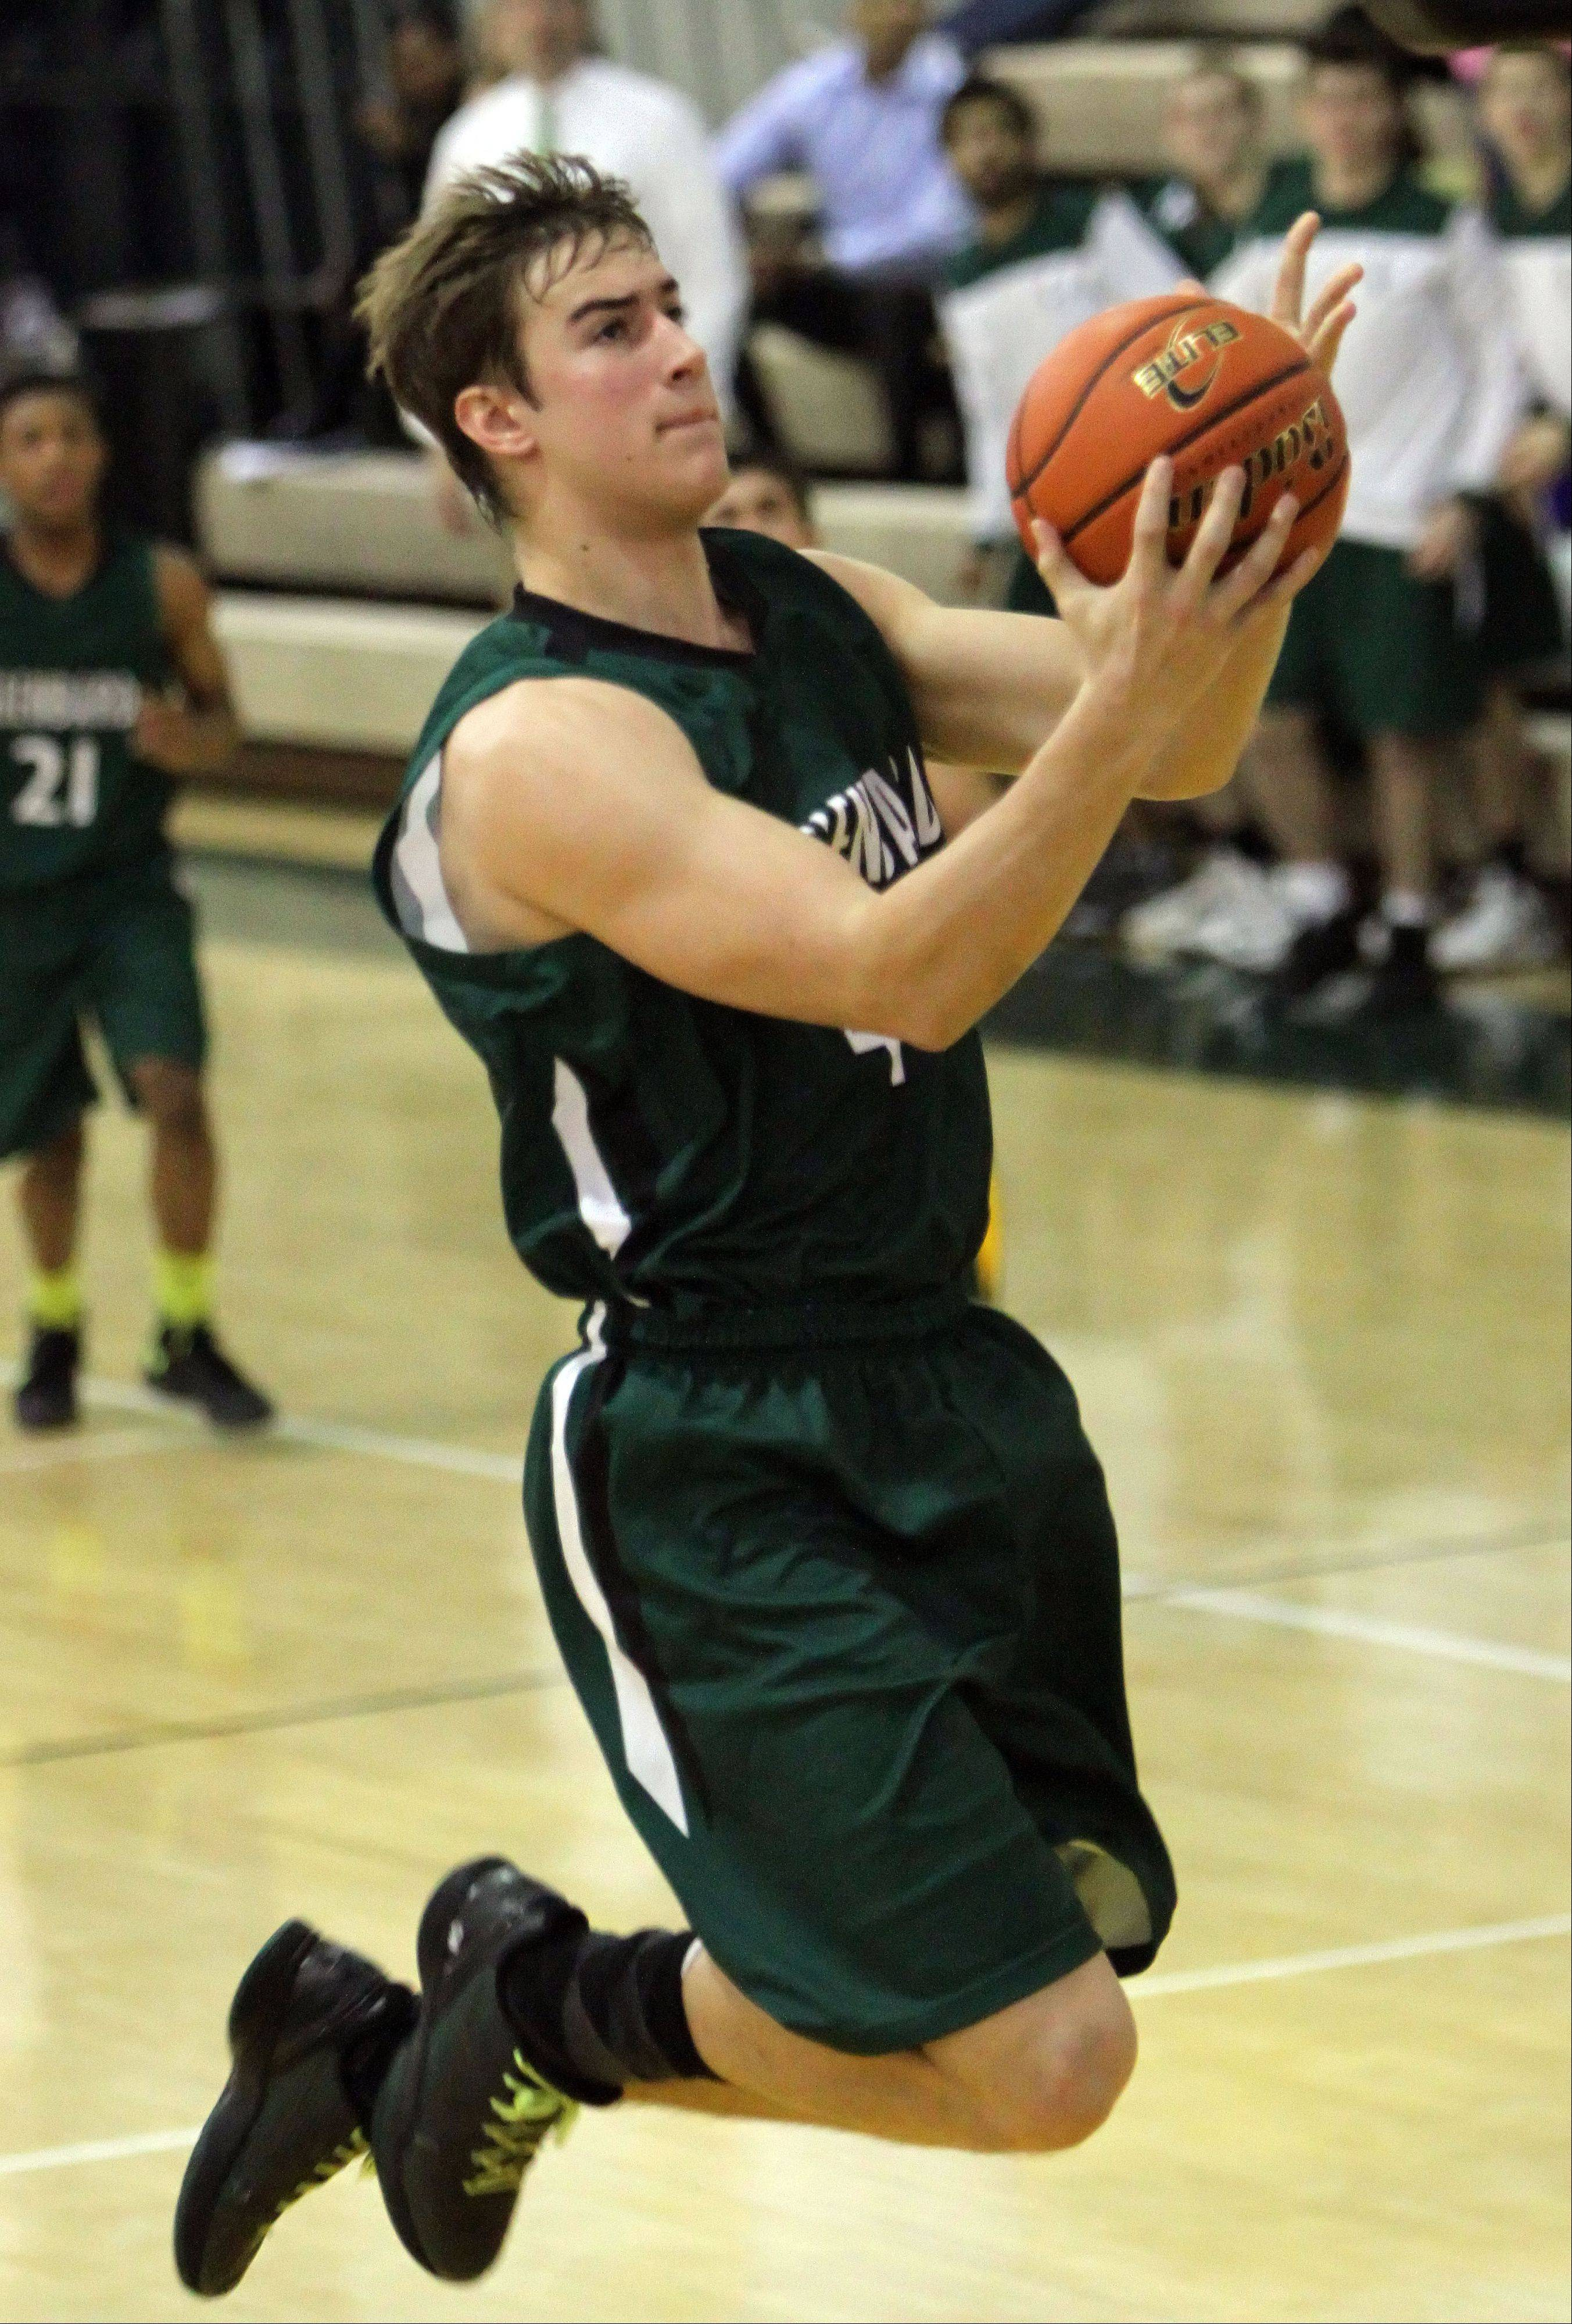 Glenbard West's Nathan Marcus drives to the hoop.